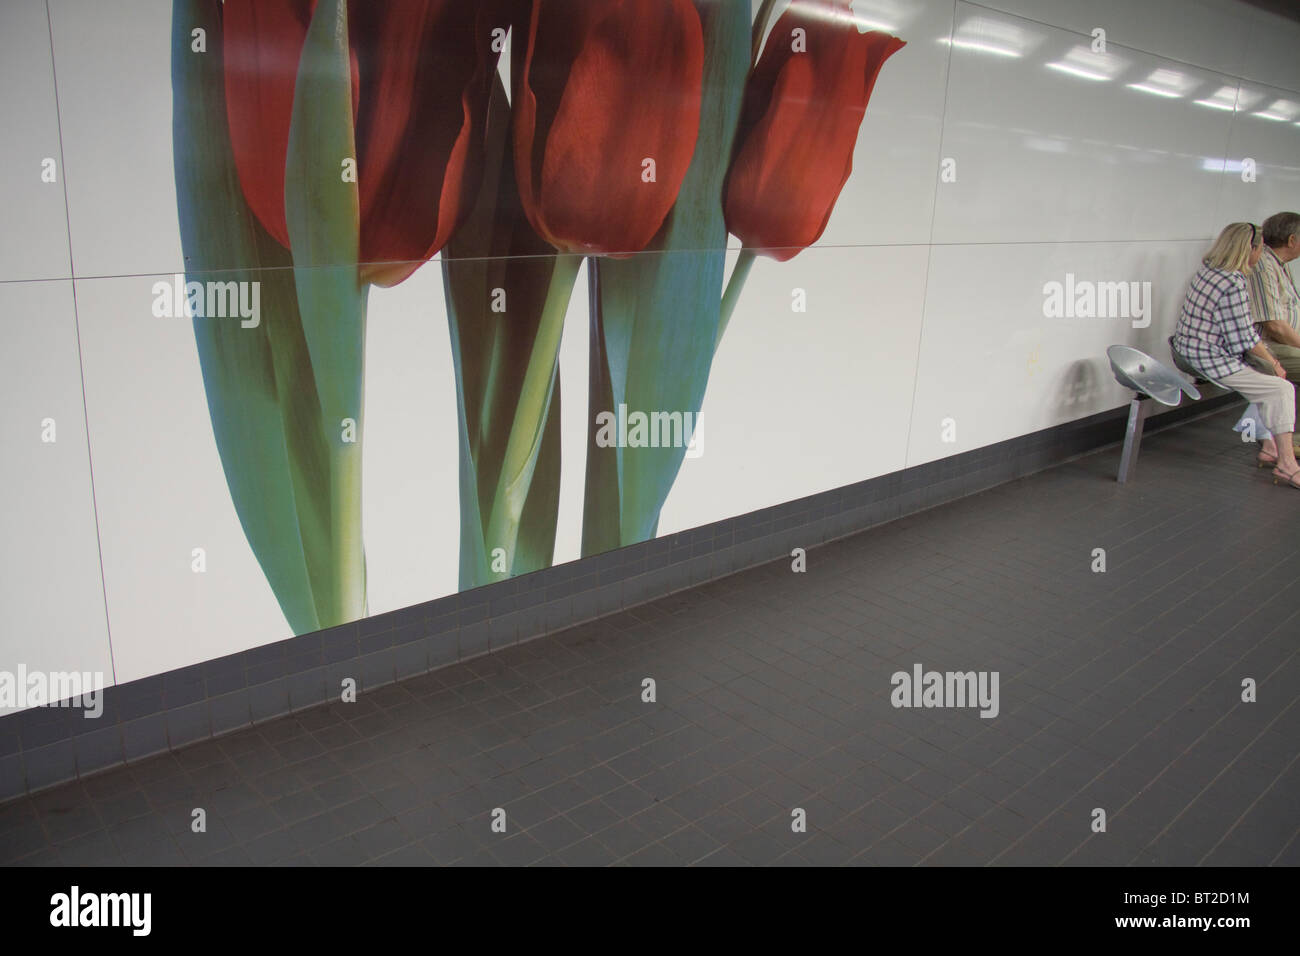 Poster of tulips  decorate the platform of  Brussels Metro - Stock Image